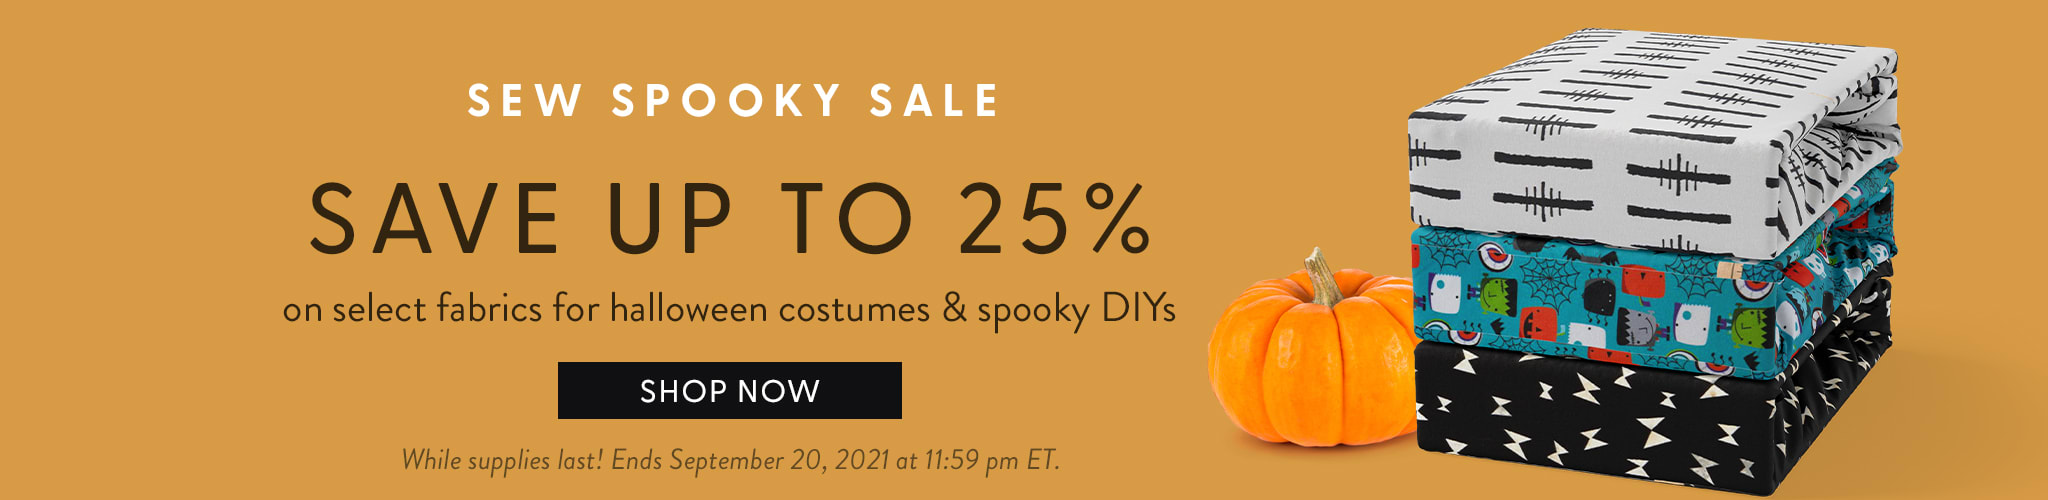 Sew Spooky Sale. Save up to 25% on select fabrics for Halloween costumes & spooky DIYs. Shop now. While supplies last! End September 20,2021 at 11:59 pm ET.